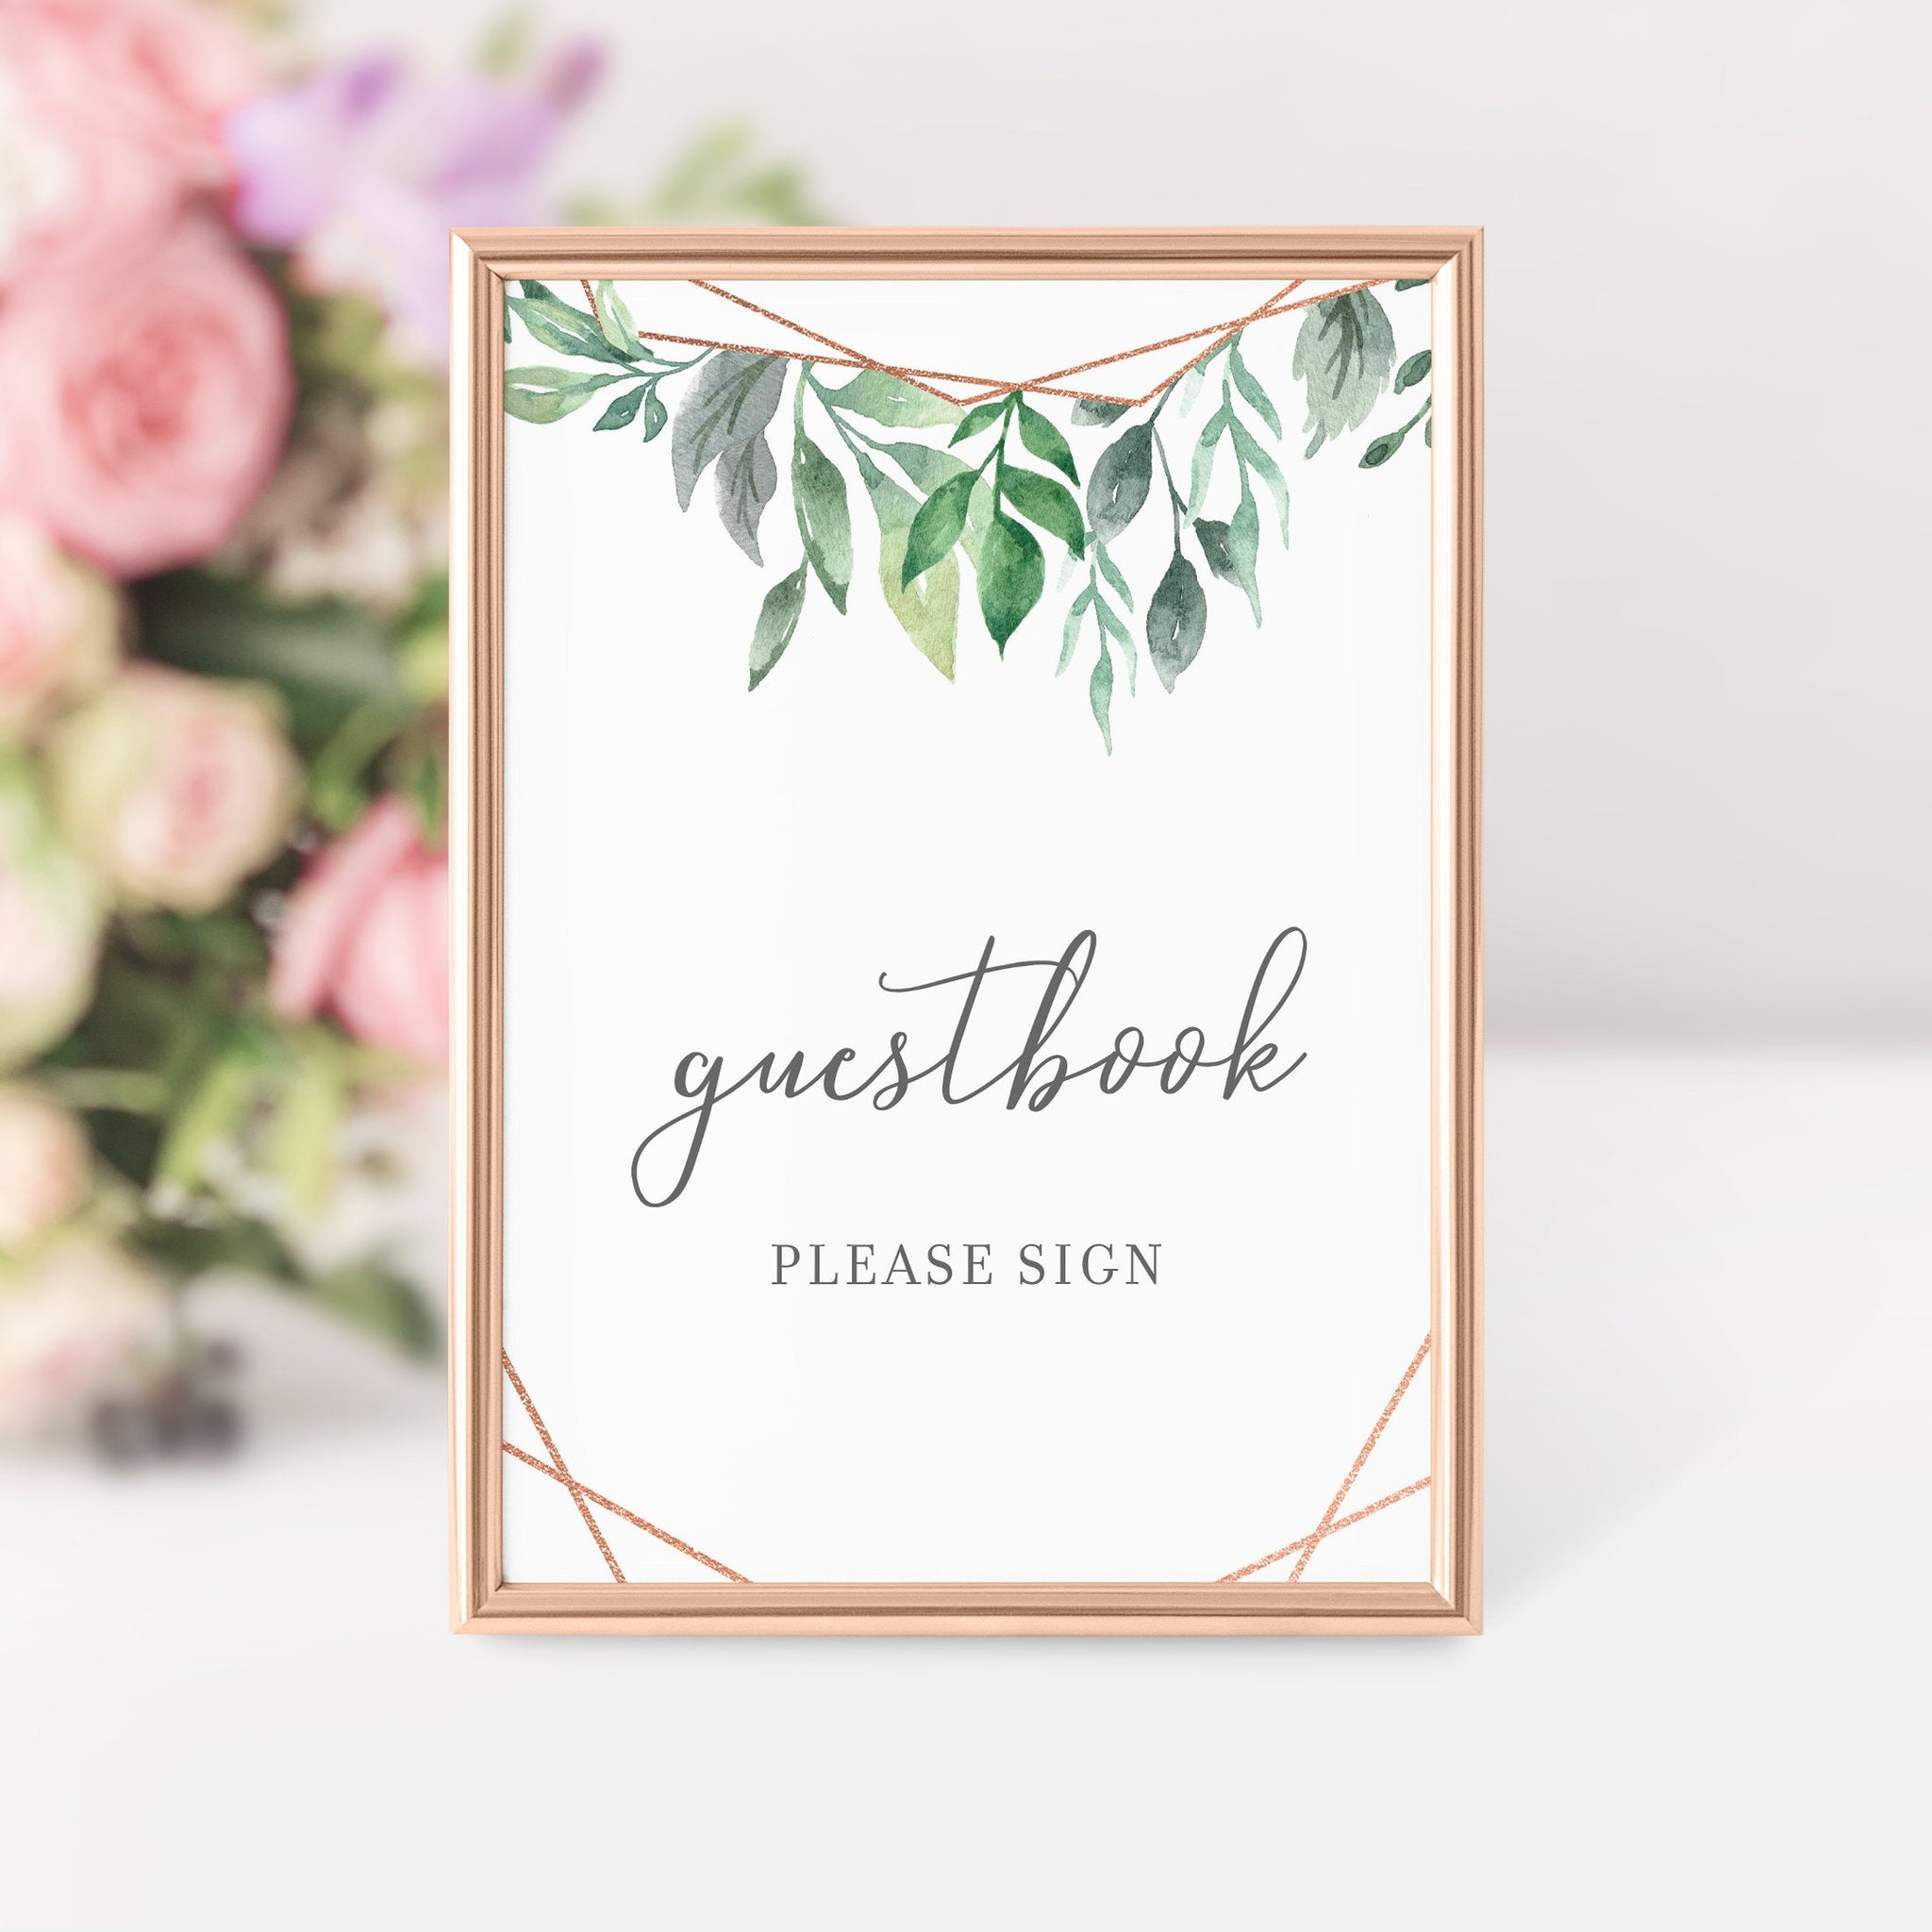 Geometric Rose Gold Greenery Printable Guestbook Sign INSTANT DOWNLOAD, Bridal Shower, Baby Shower, Wedding Decorations Supplies - GFRG100 - @PlumPolkaDot